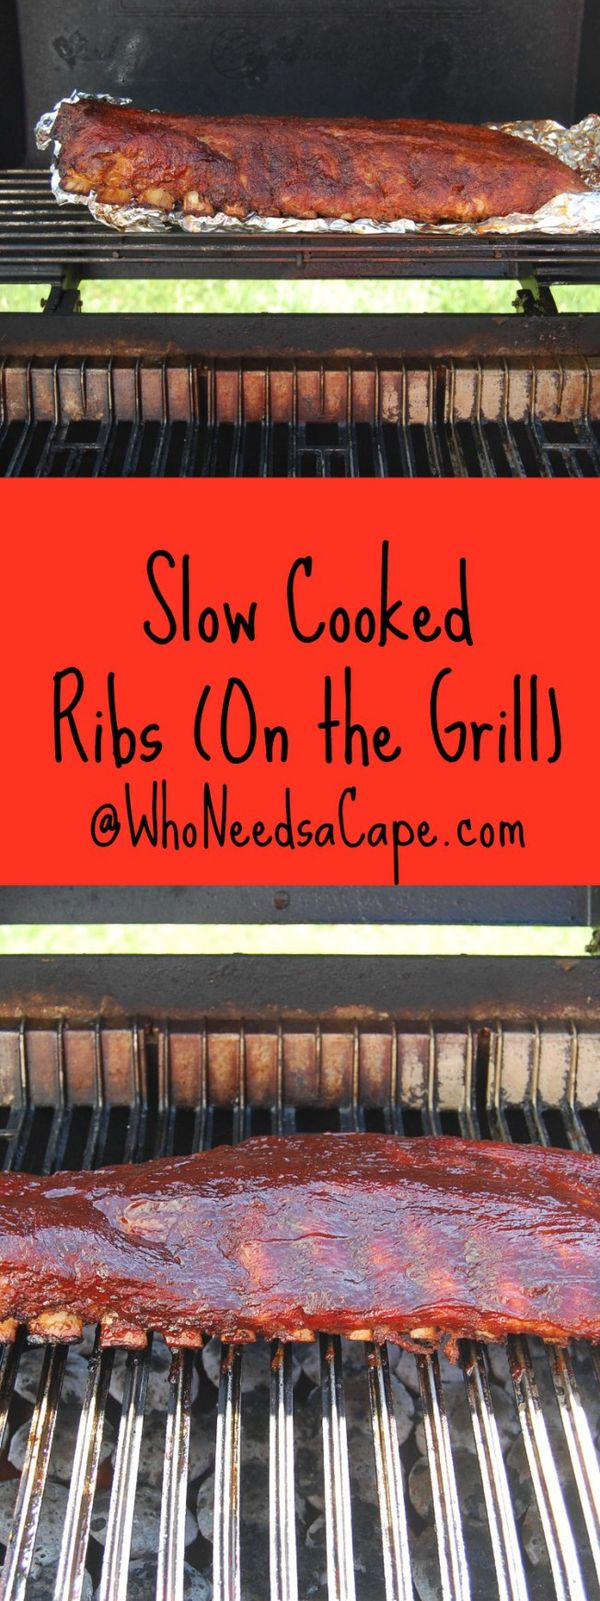 Slow Cooked on the Grill Ribs